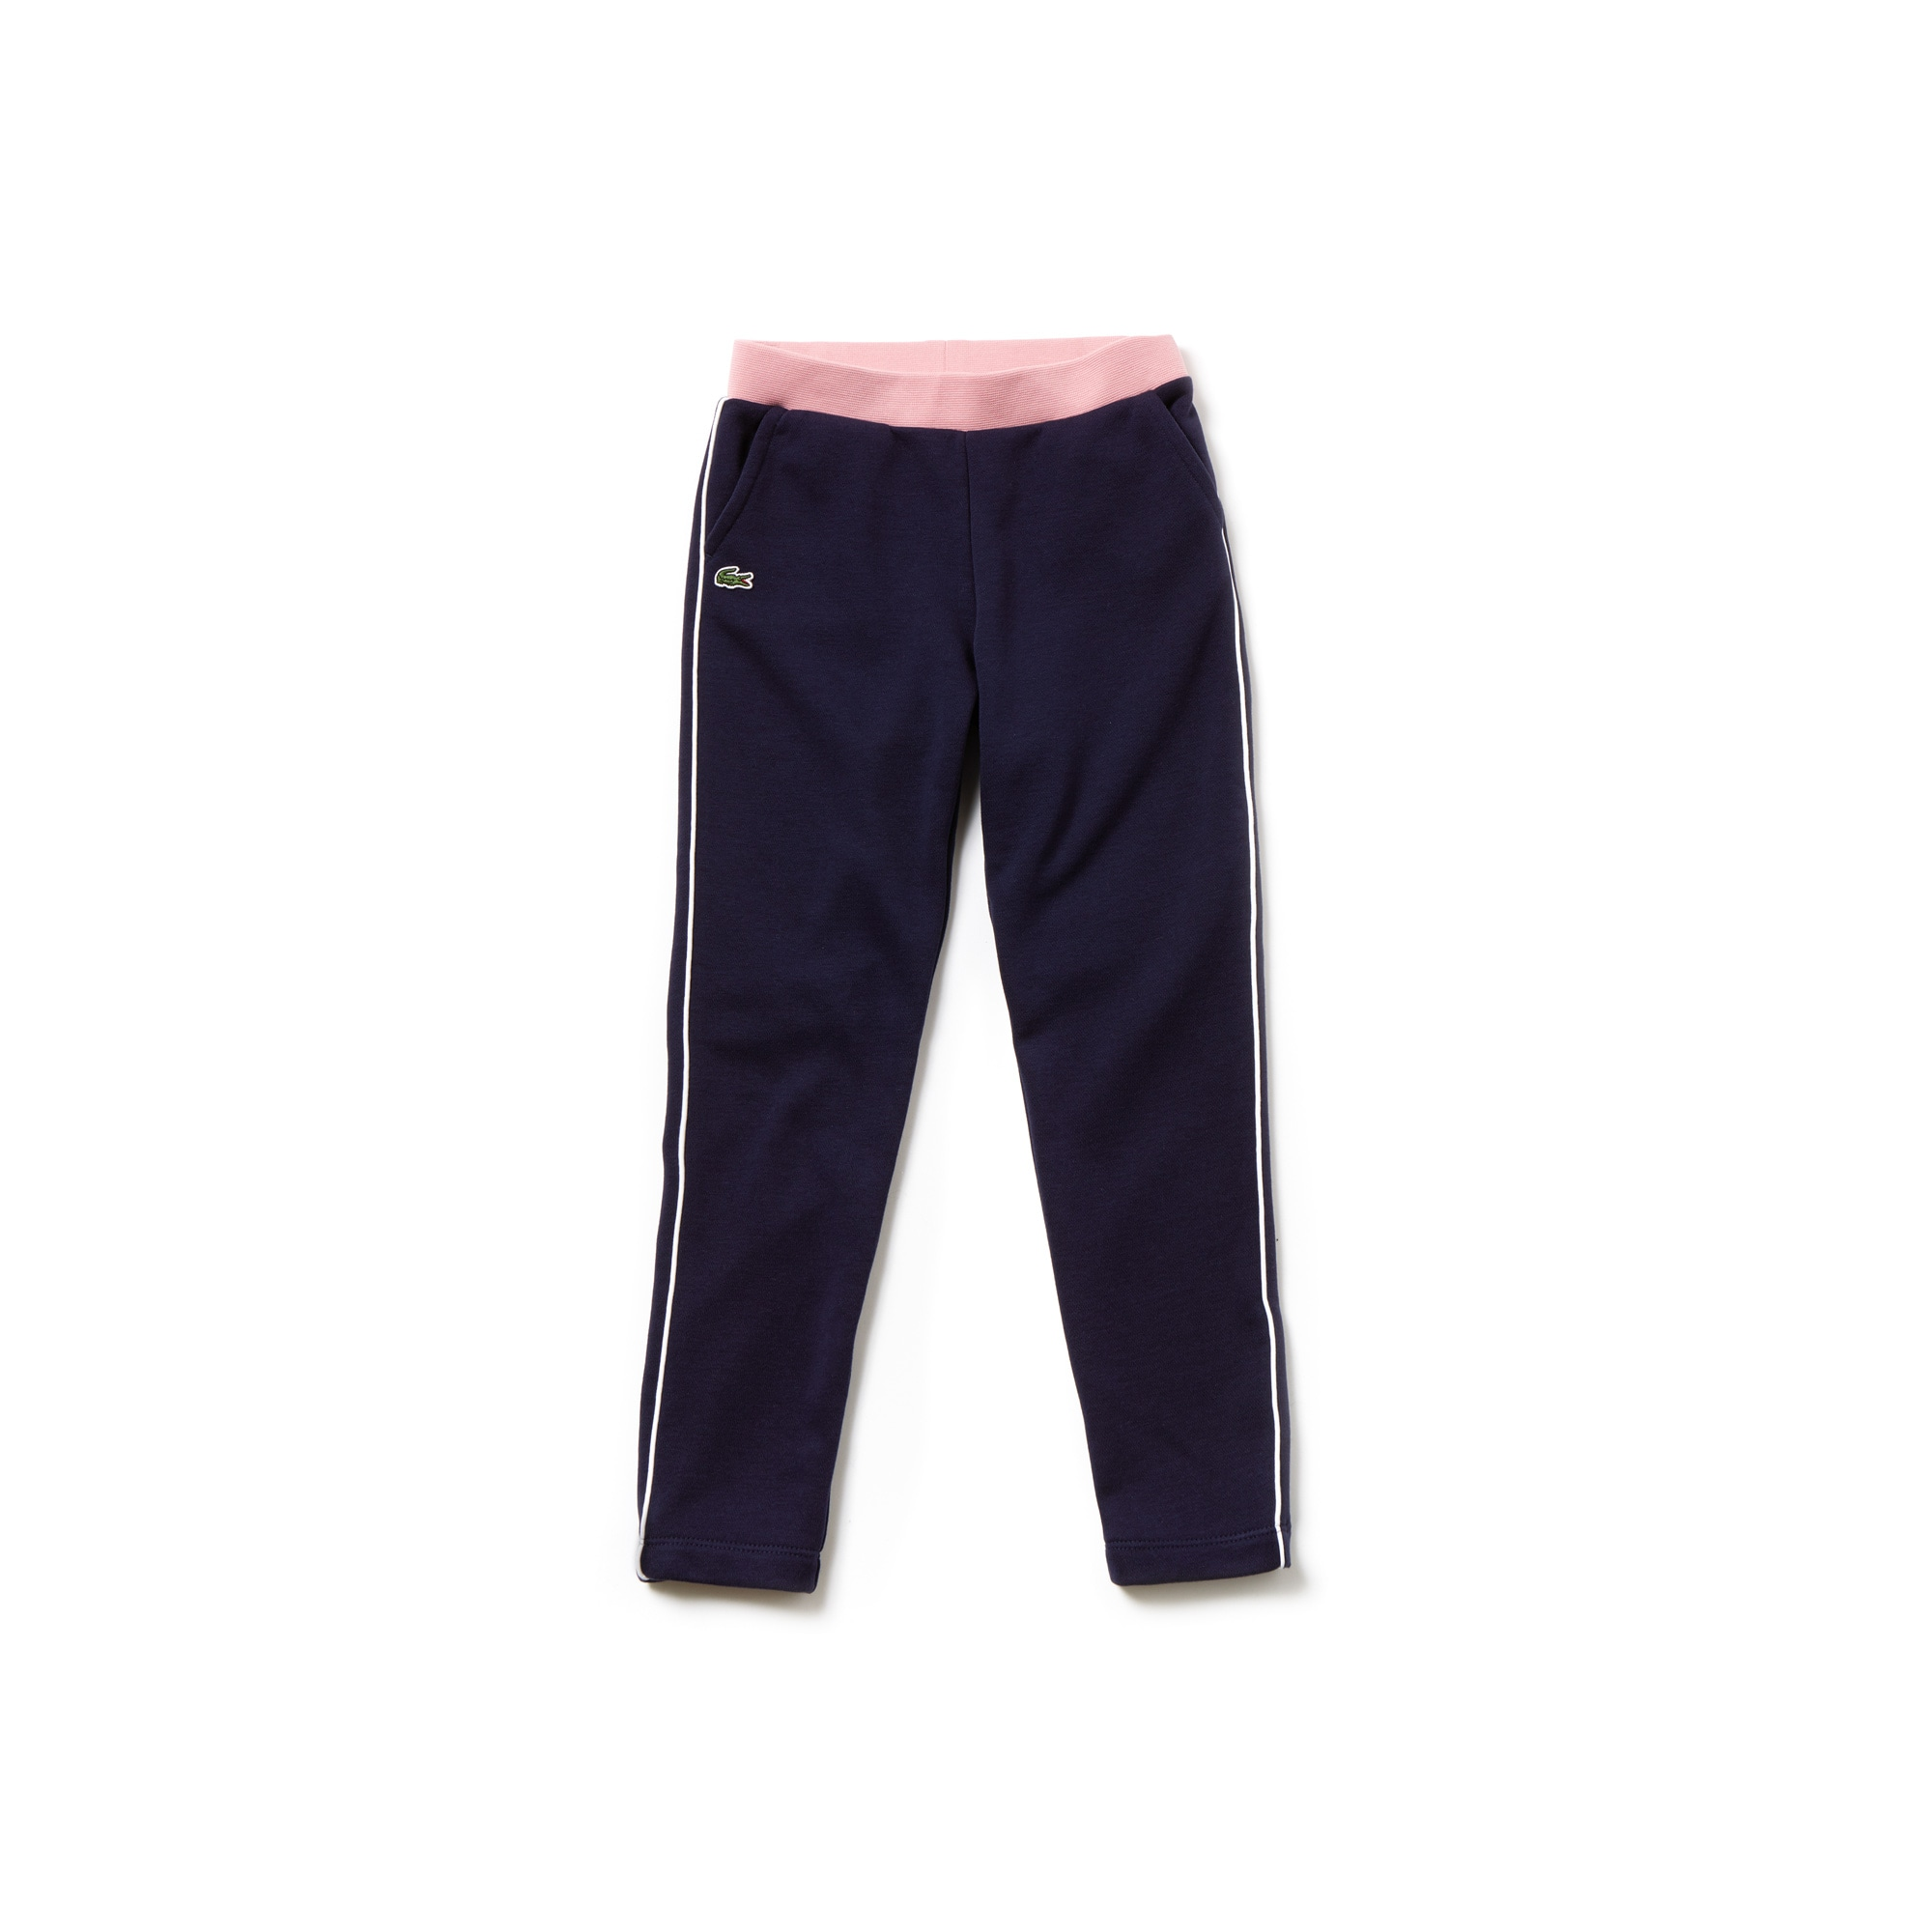 Girls' Contrast Accents Fleece Sweatpants